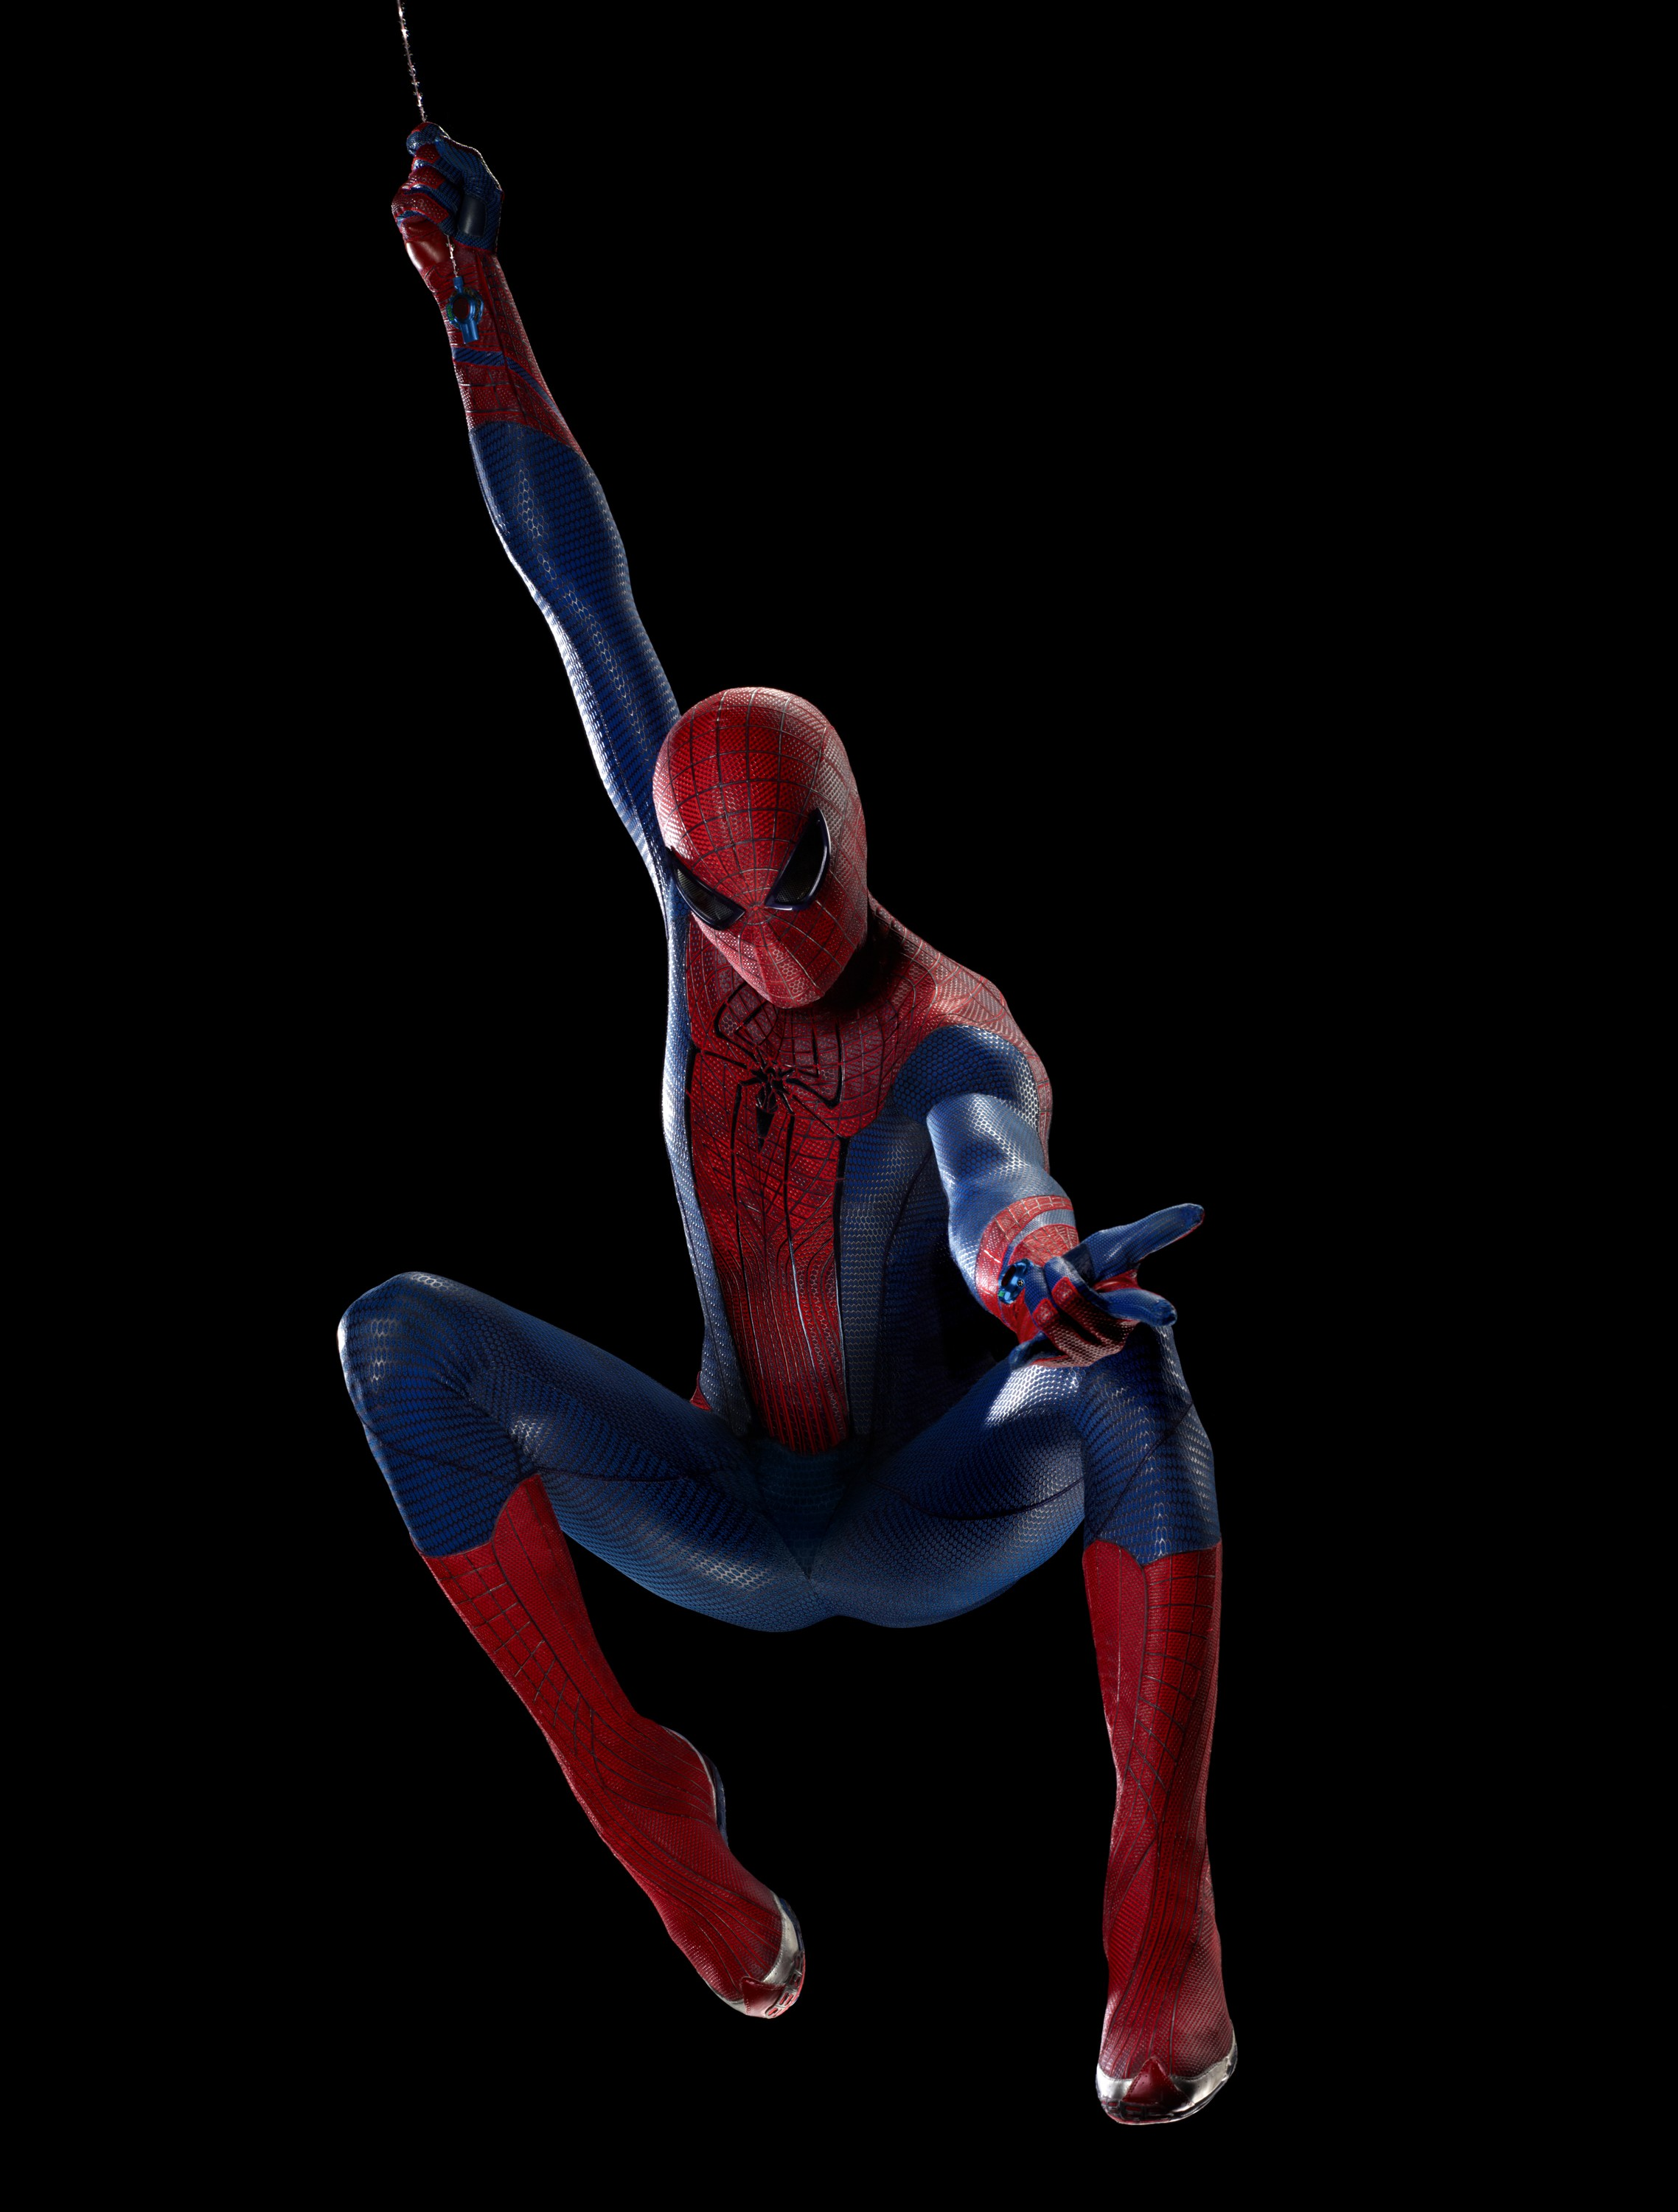 The-Amazing-Spider-Man fea79885.jpg